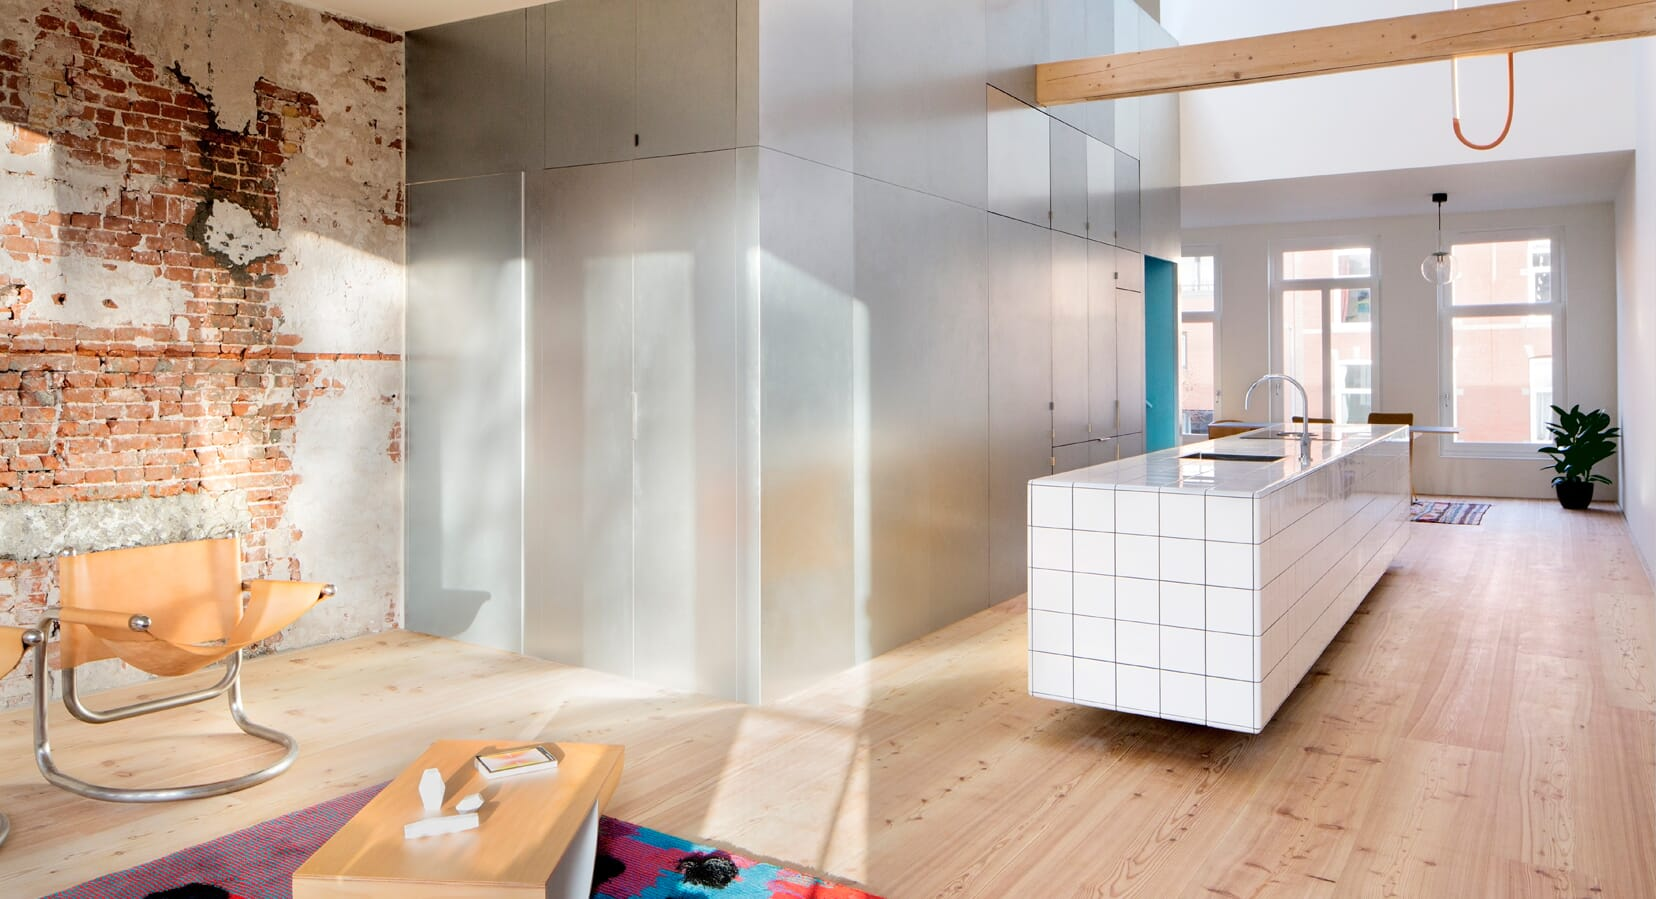 Take a Look Inside the Transformation of a 20th Century Townhouse